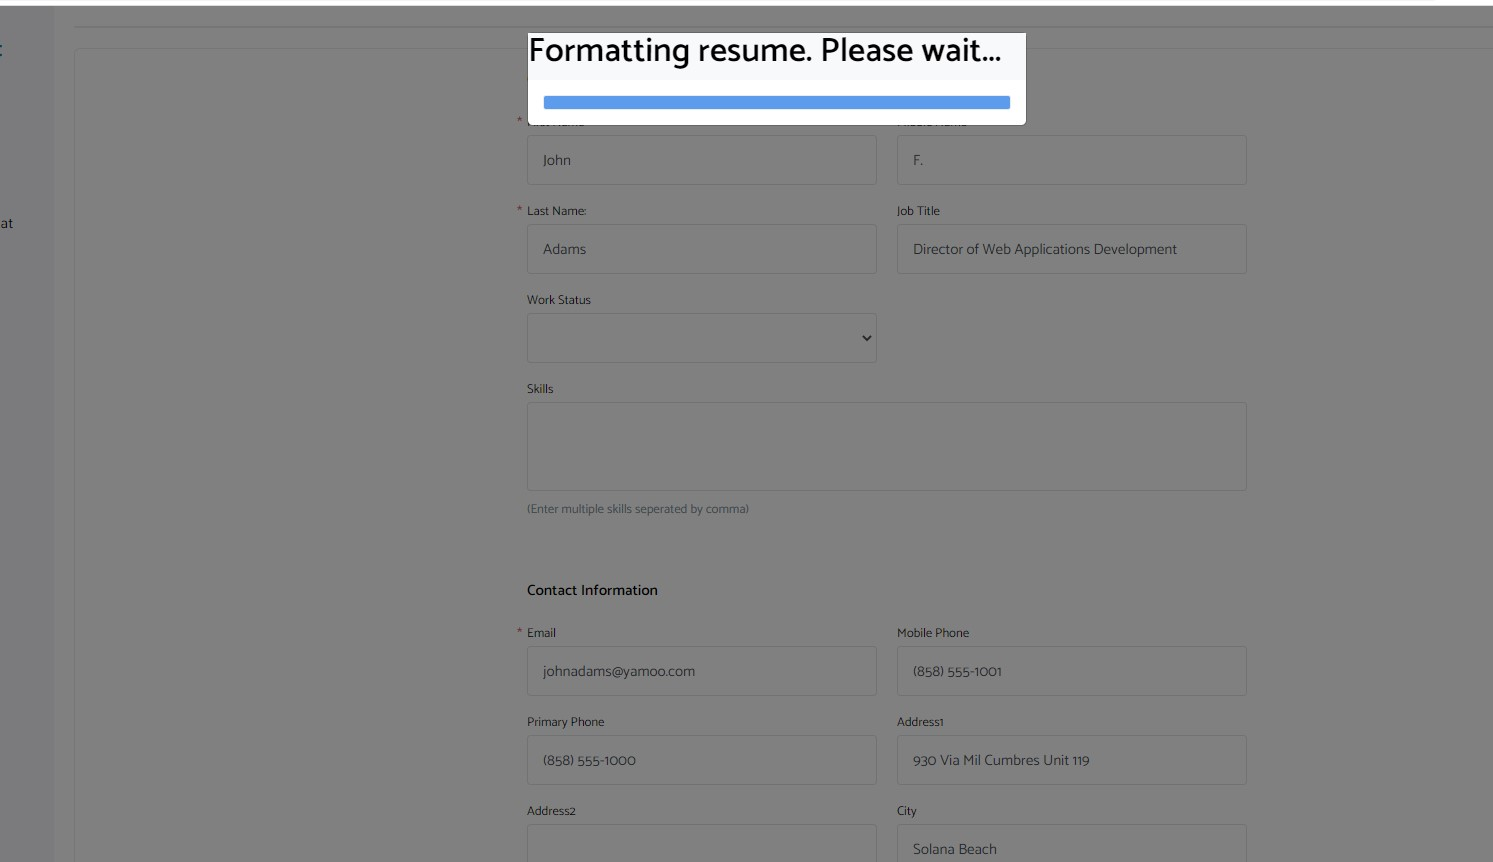 iReformat: Resume formatting progress